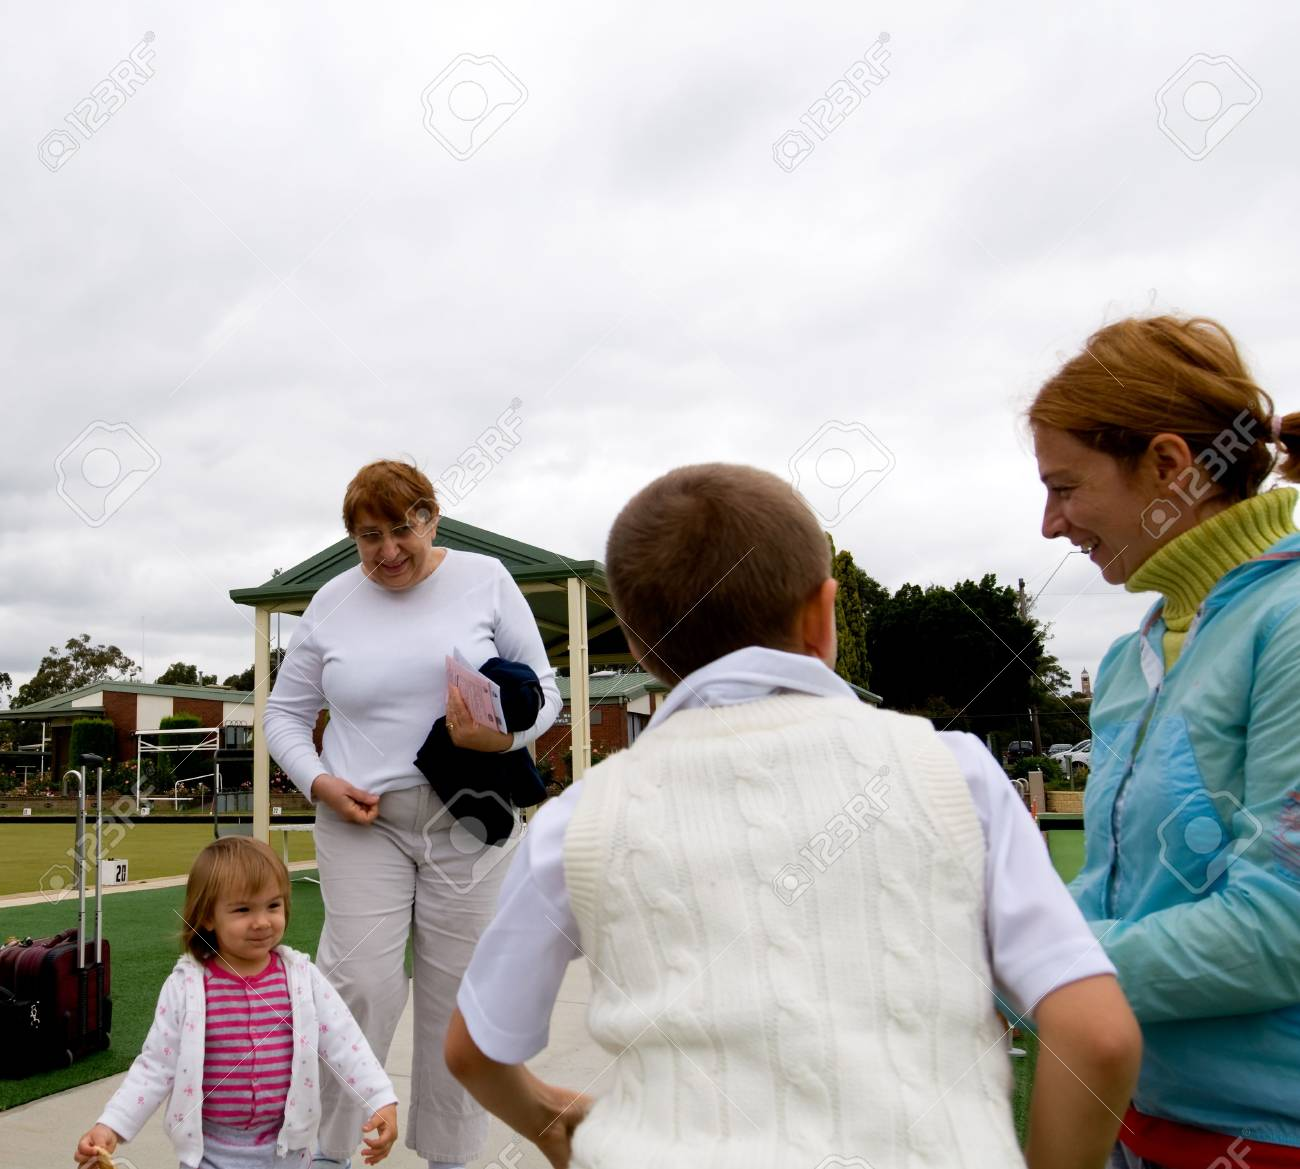 Images of moments worth remembering Stock Photo - 4748303